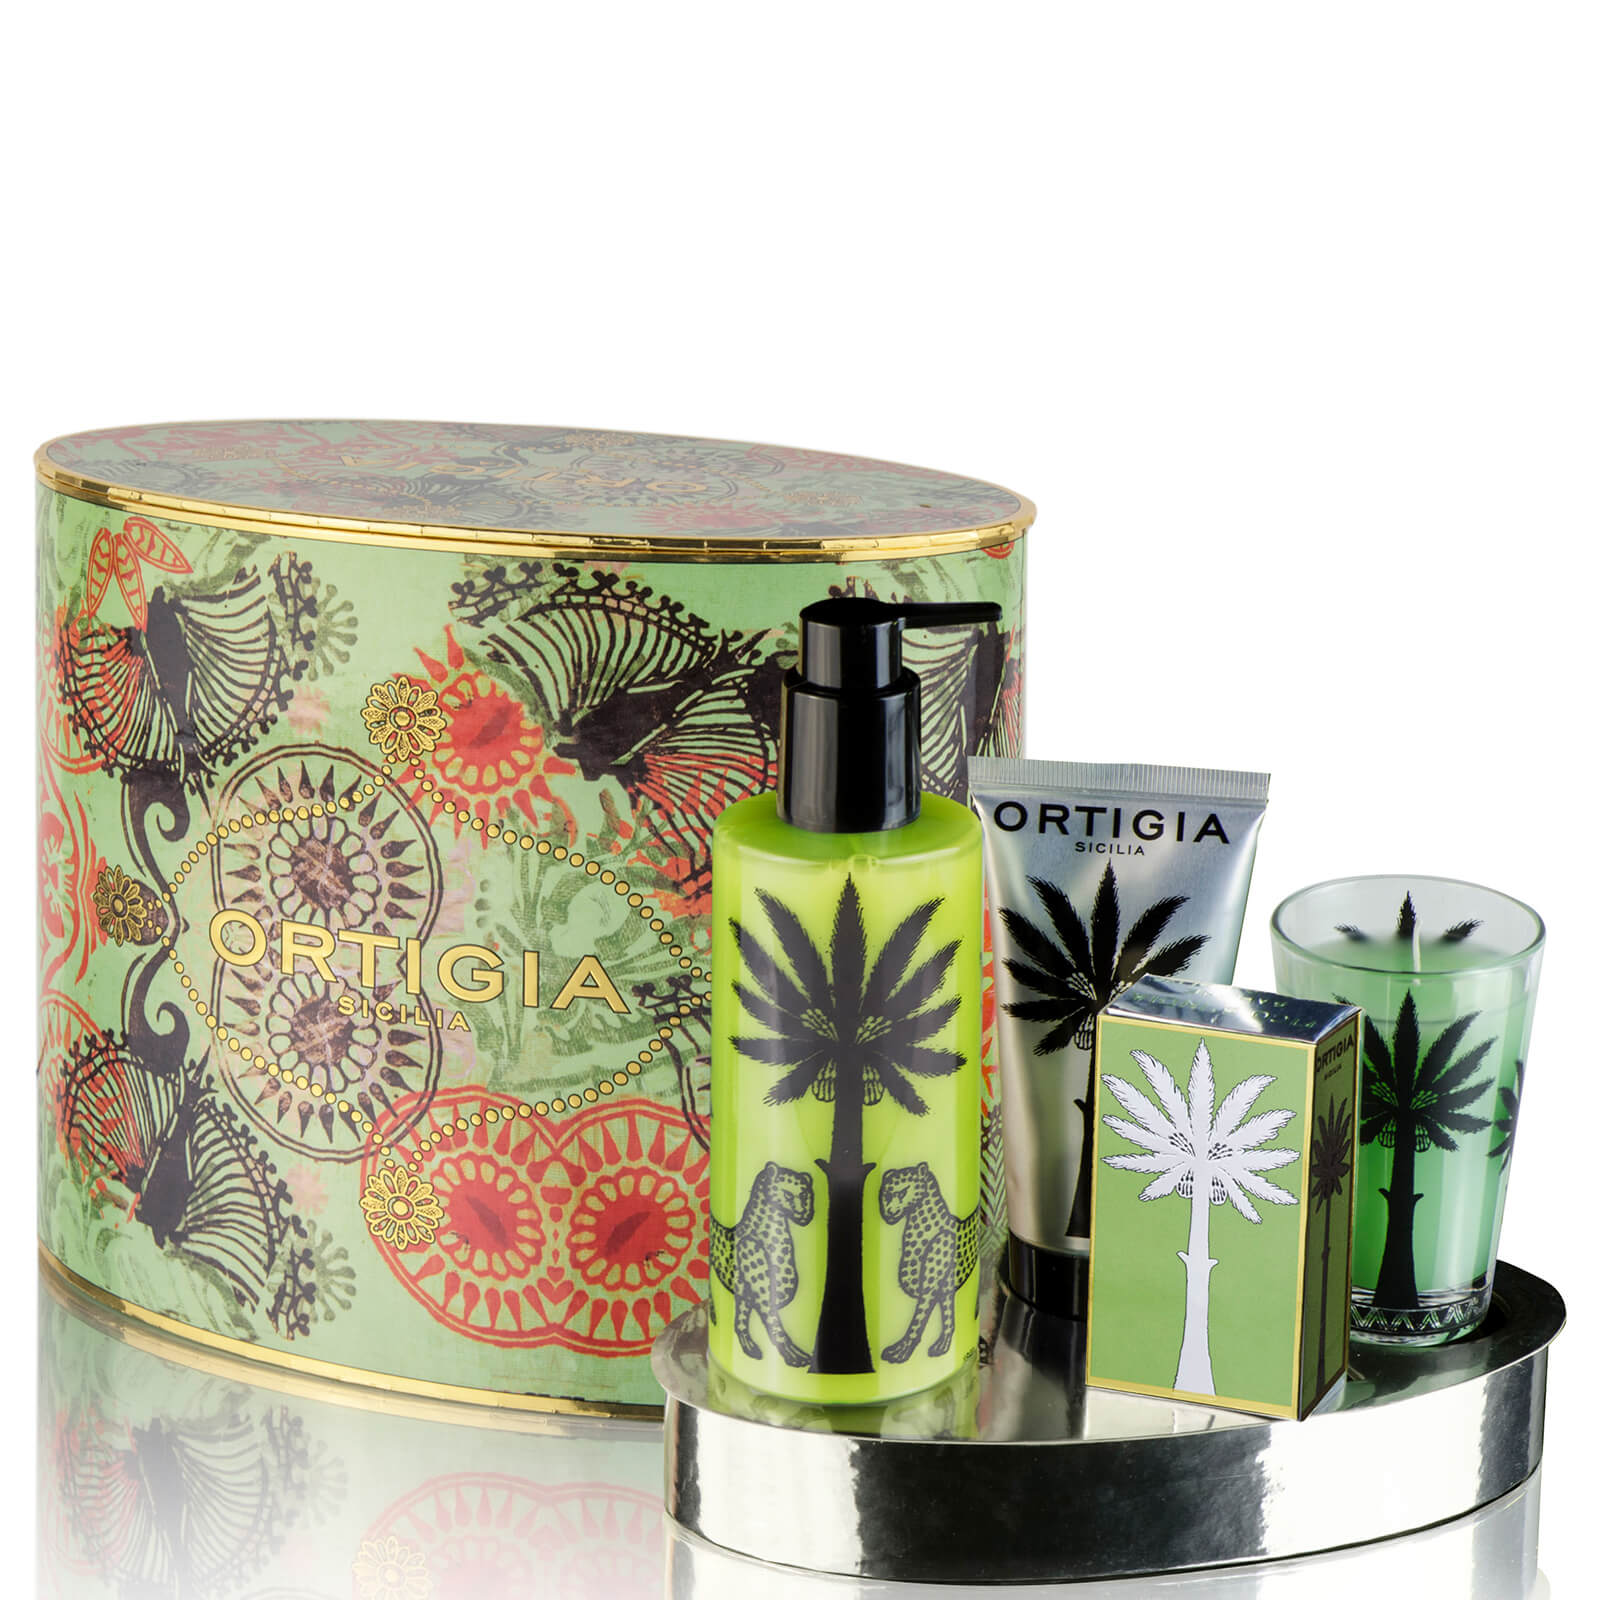 Ortigia Fico D' India Gift Box